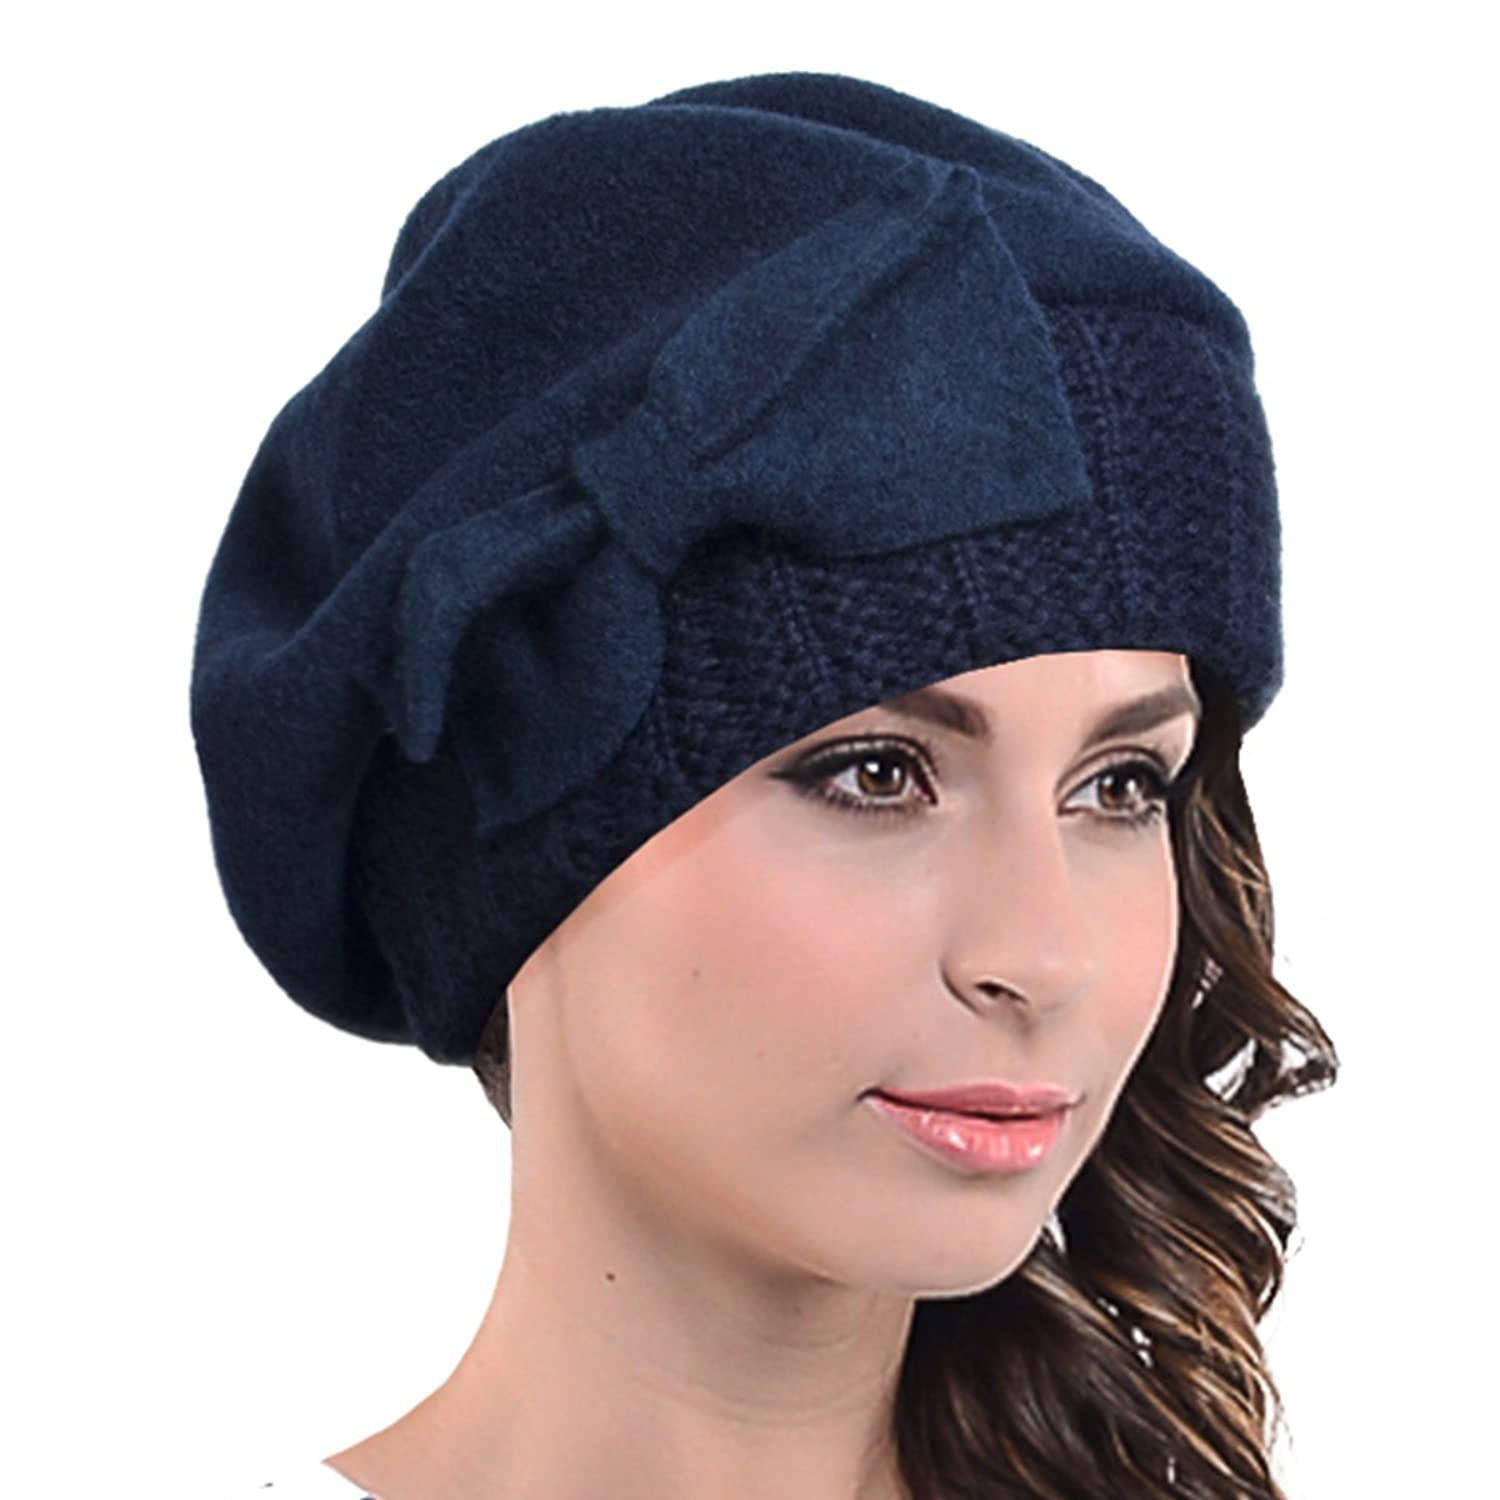 1940s Style Hats Lady French Beret Wool Beret Chic Beanie Winter Hat Jf-br034 $21.99 AT vintagedancer.com